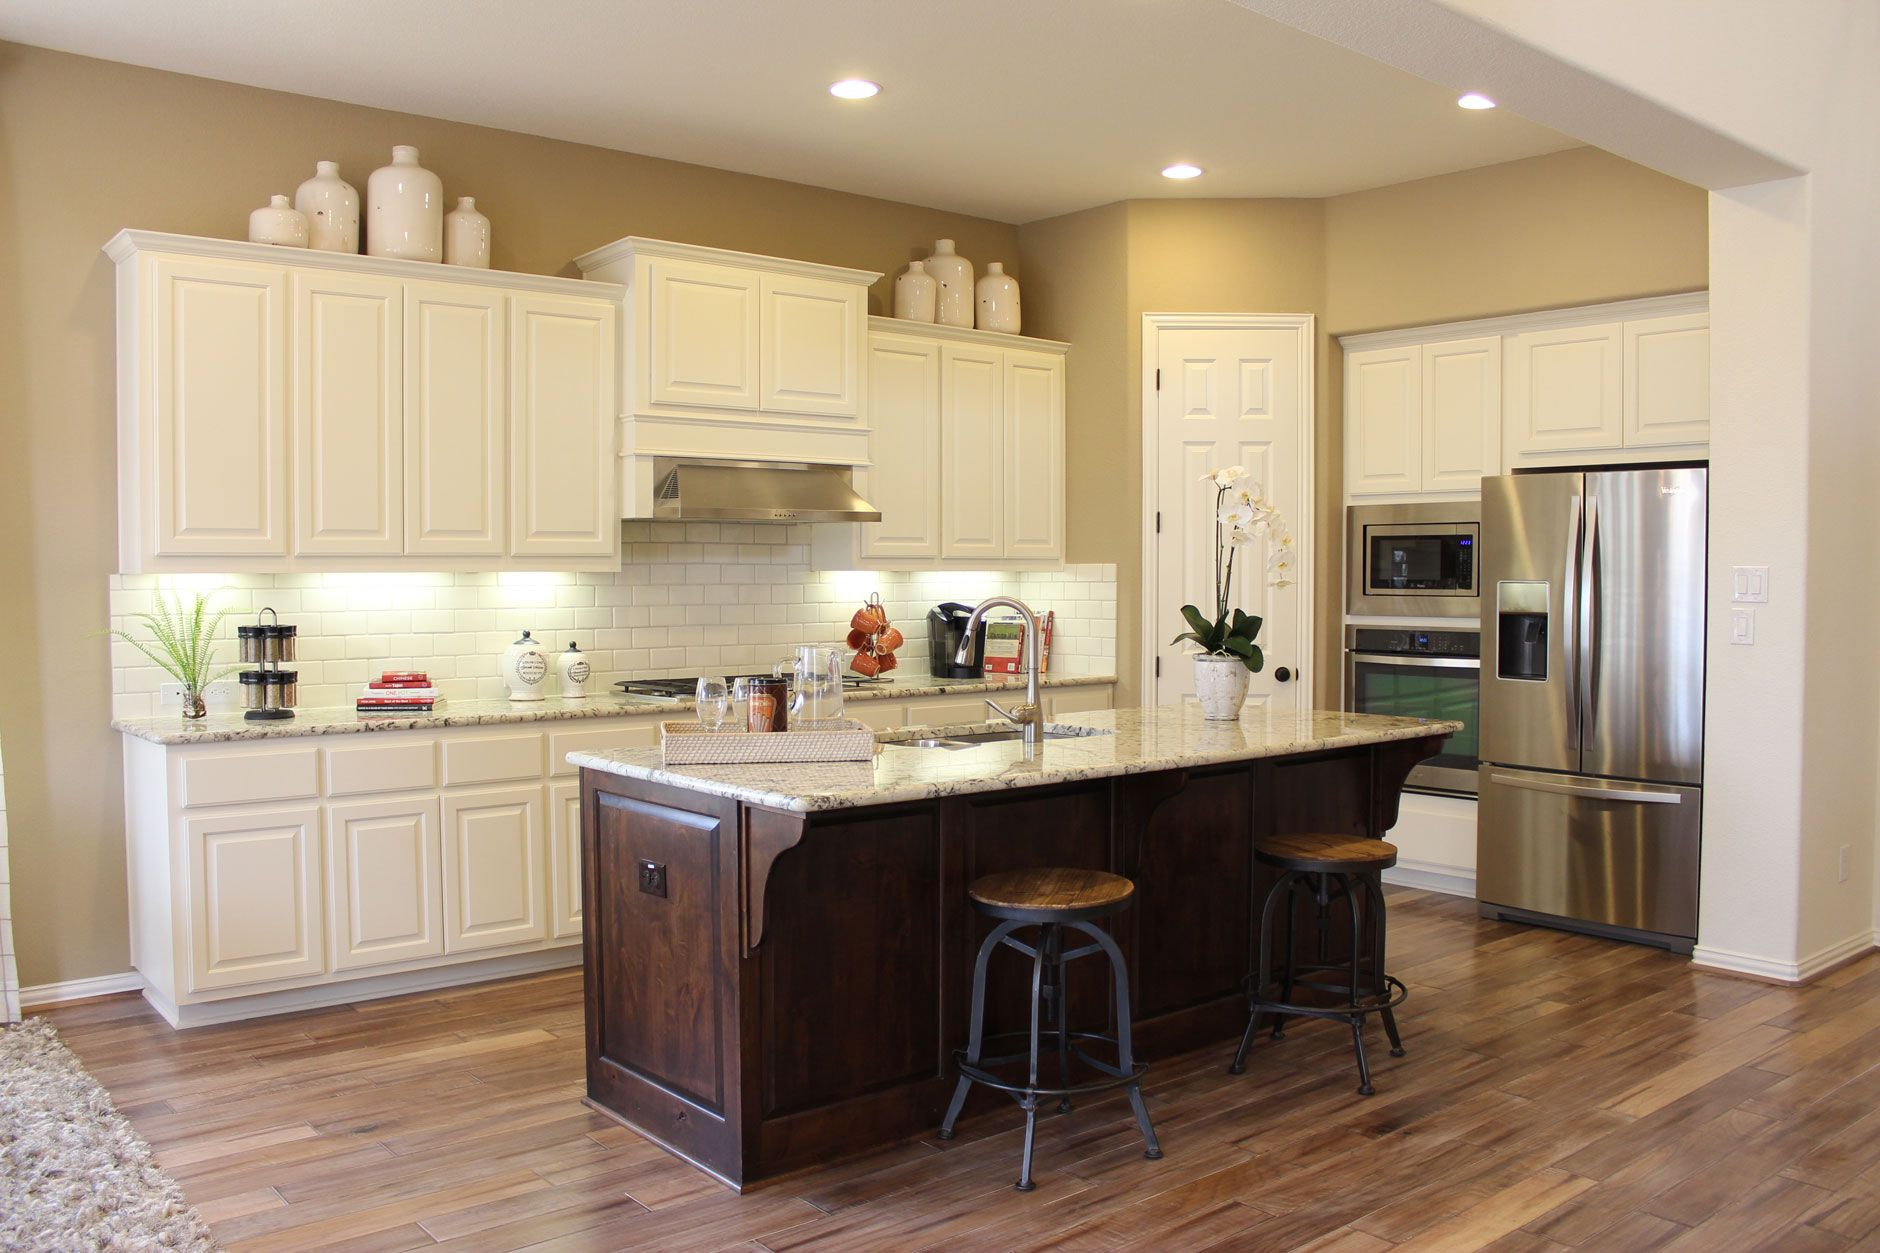 Kitchen With Painted White Cabinets And Cabinet Doors Modern Grey Kitchen Contemporary Kitchen Tiles Grey Kitchen Floor